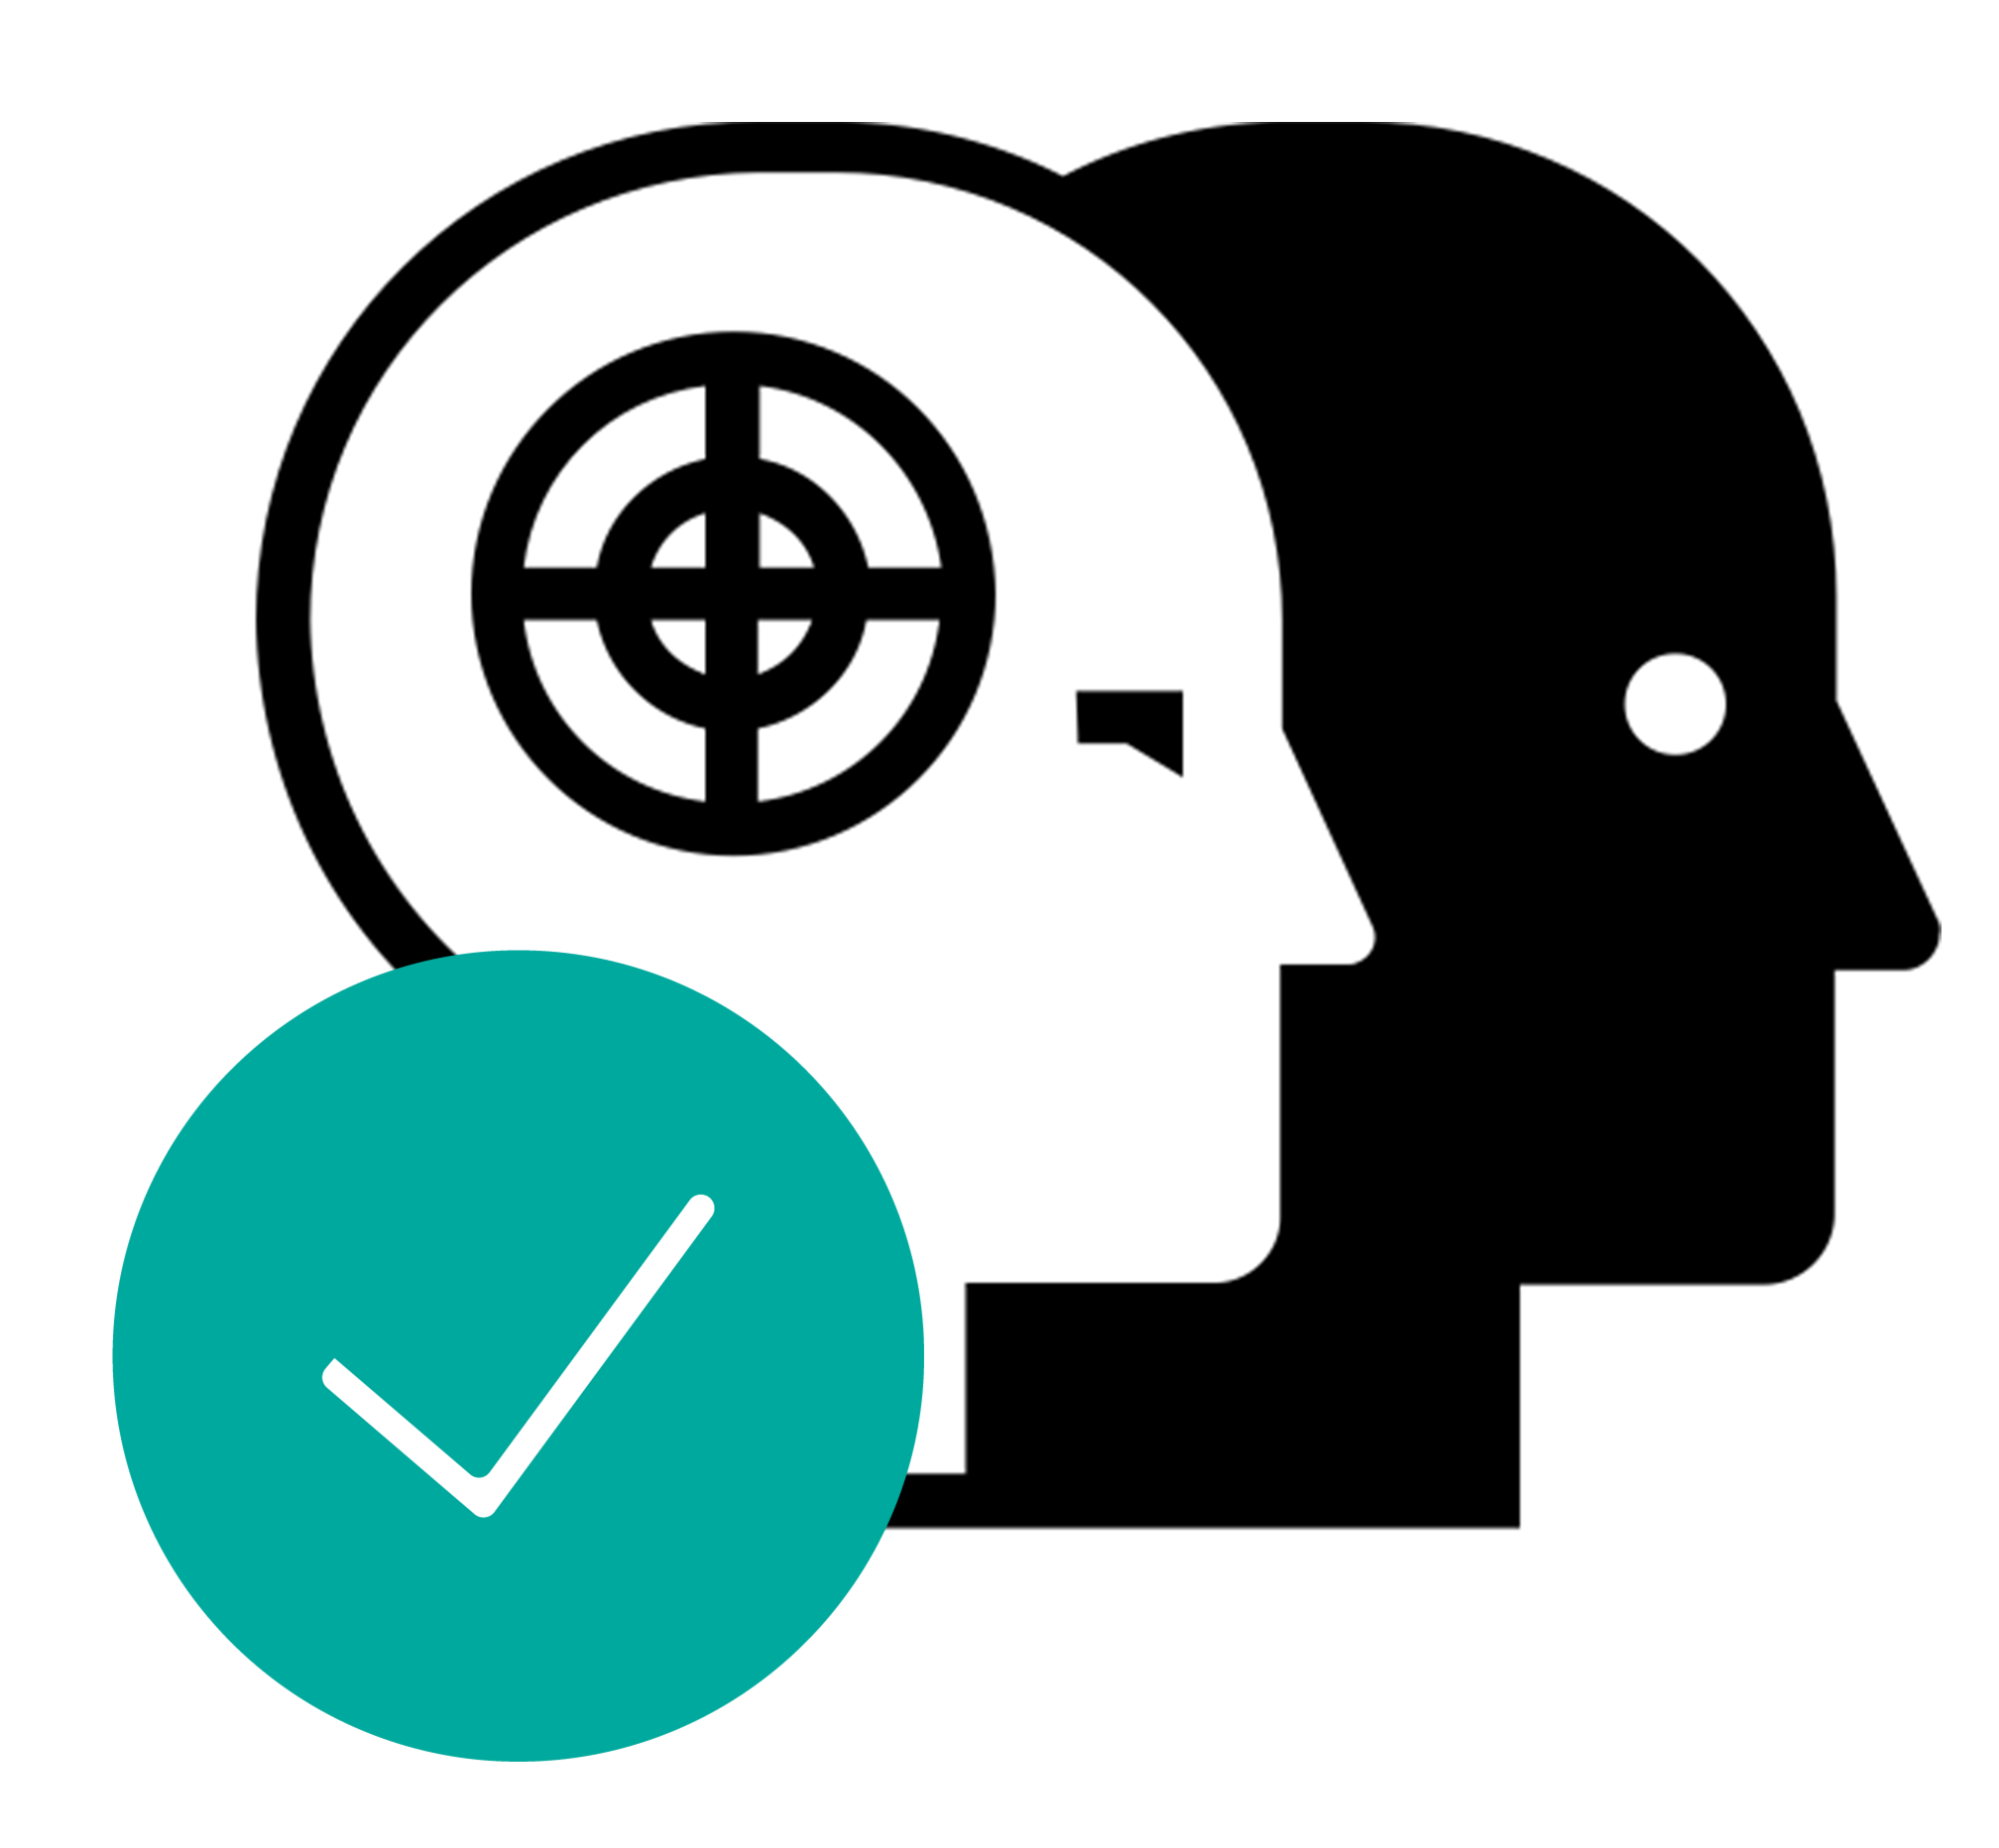 digital twin icon and green check